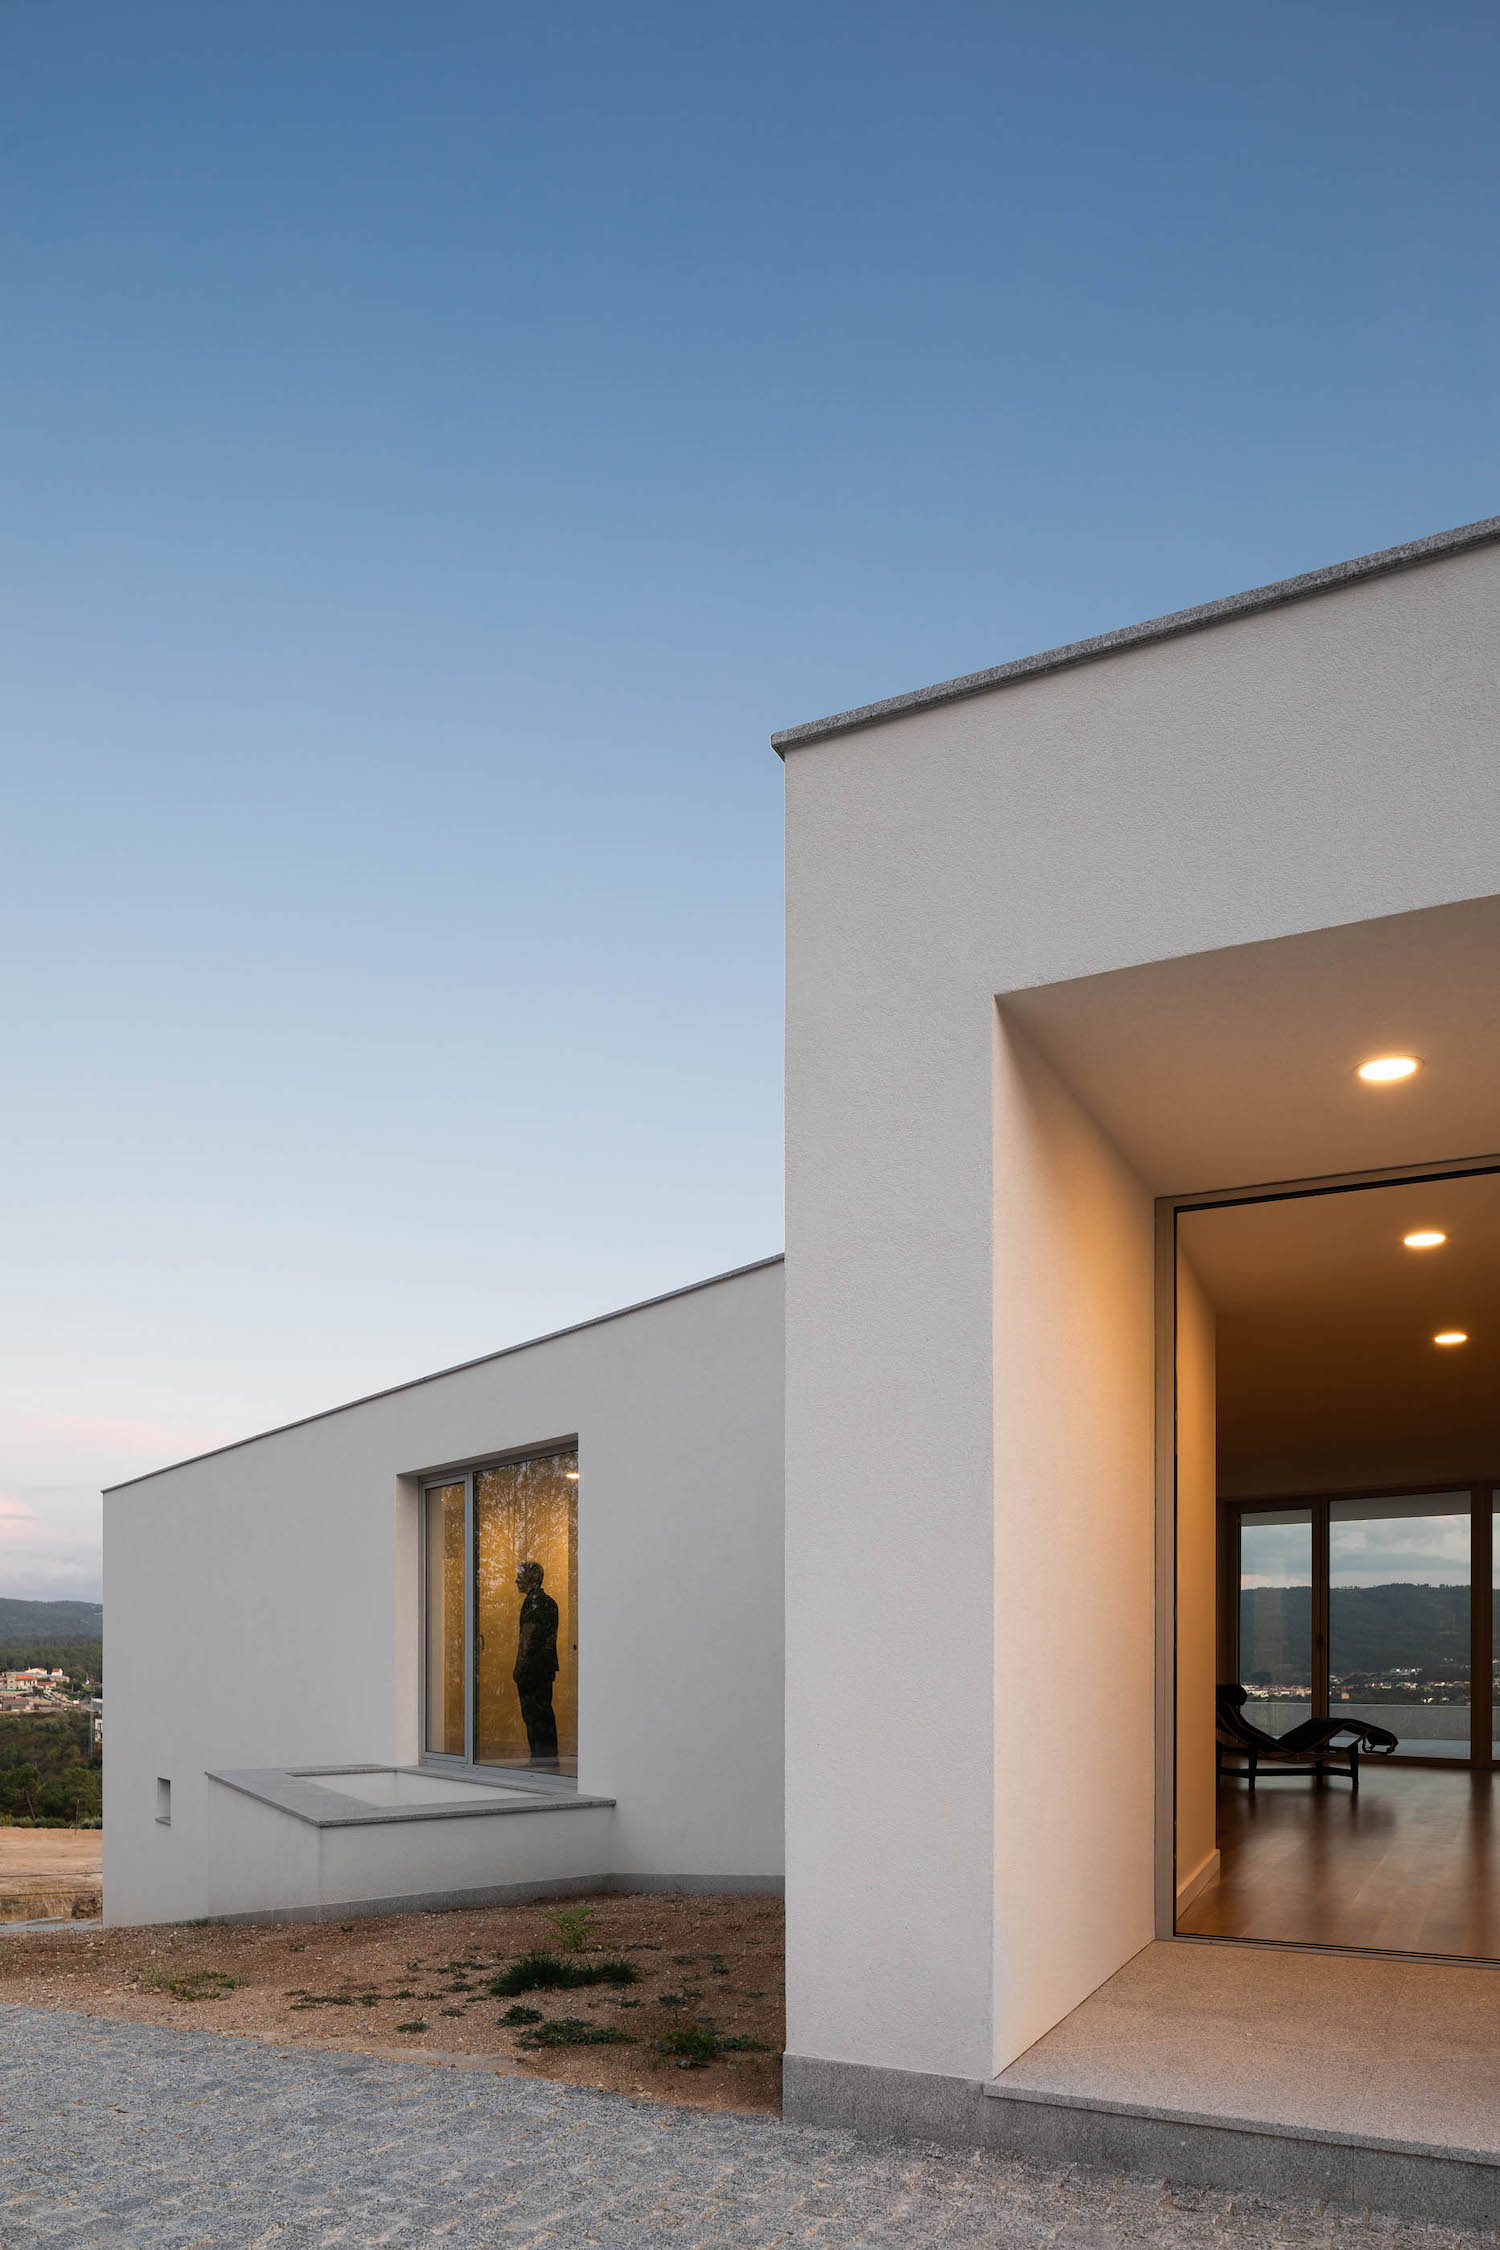 House in Lamego, Portugal by António Ildefonso Architect